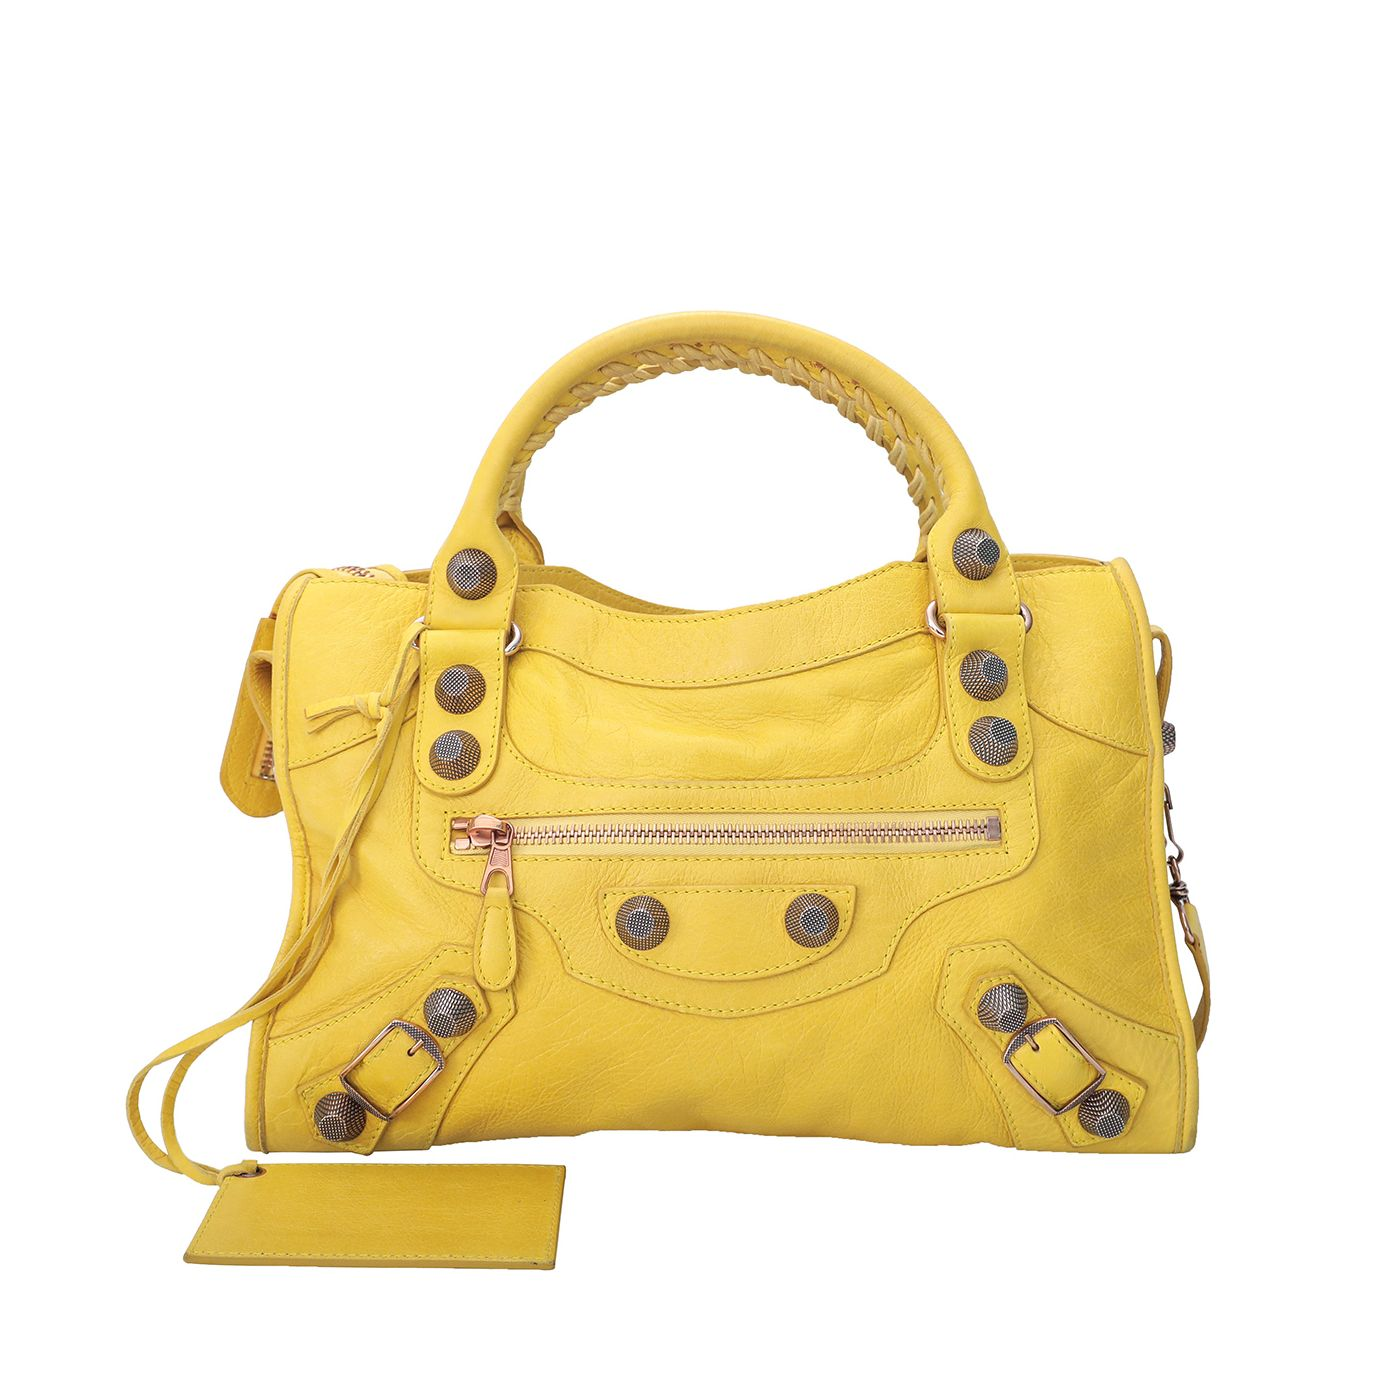 Balenciaga Yellow Giant Motorcycle City Bag